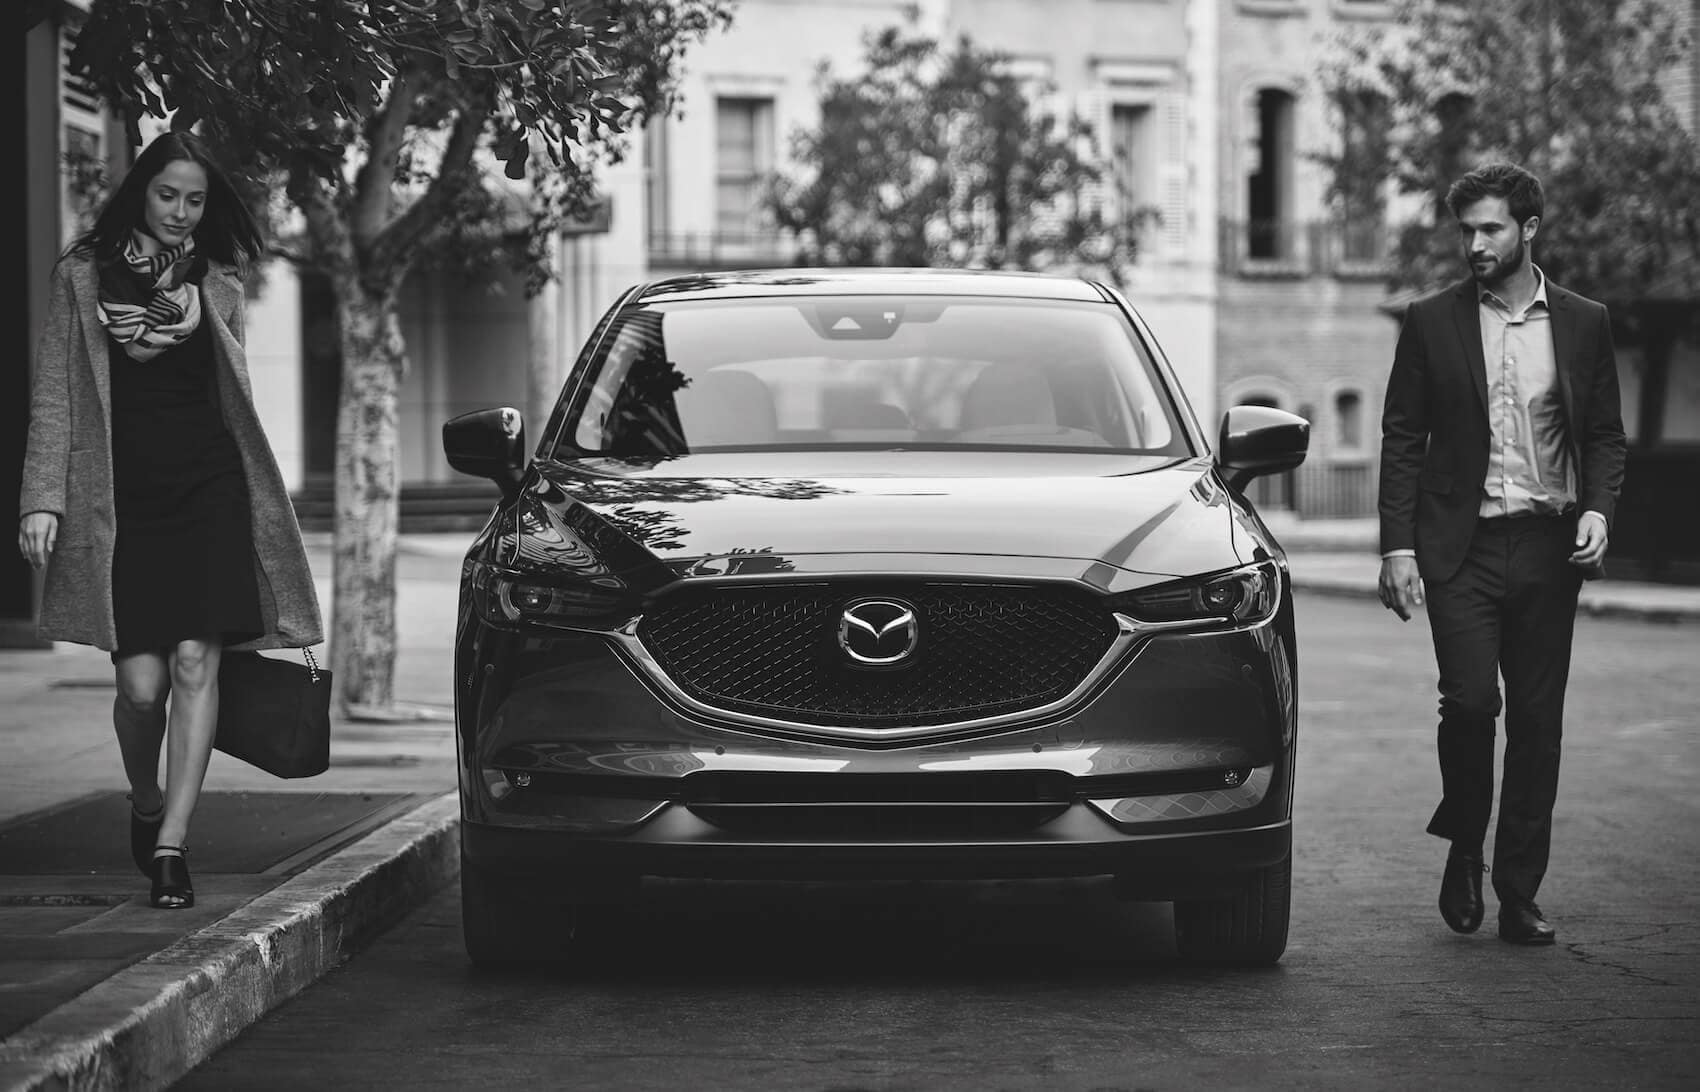 MAZDA CX-5 Sport: Baseline Power and Safety